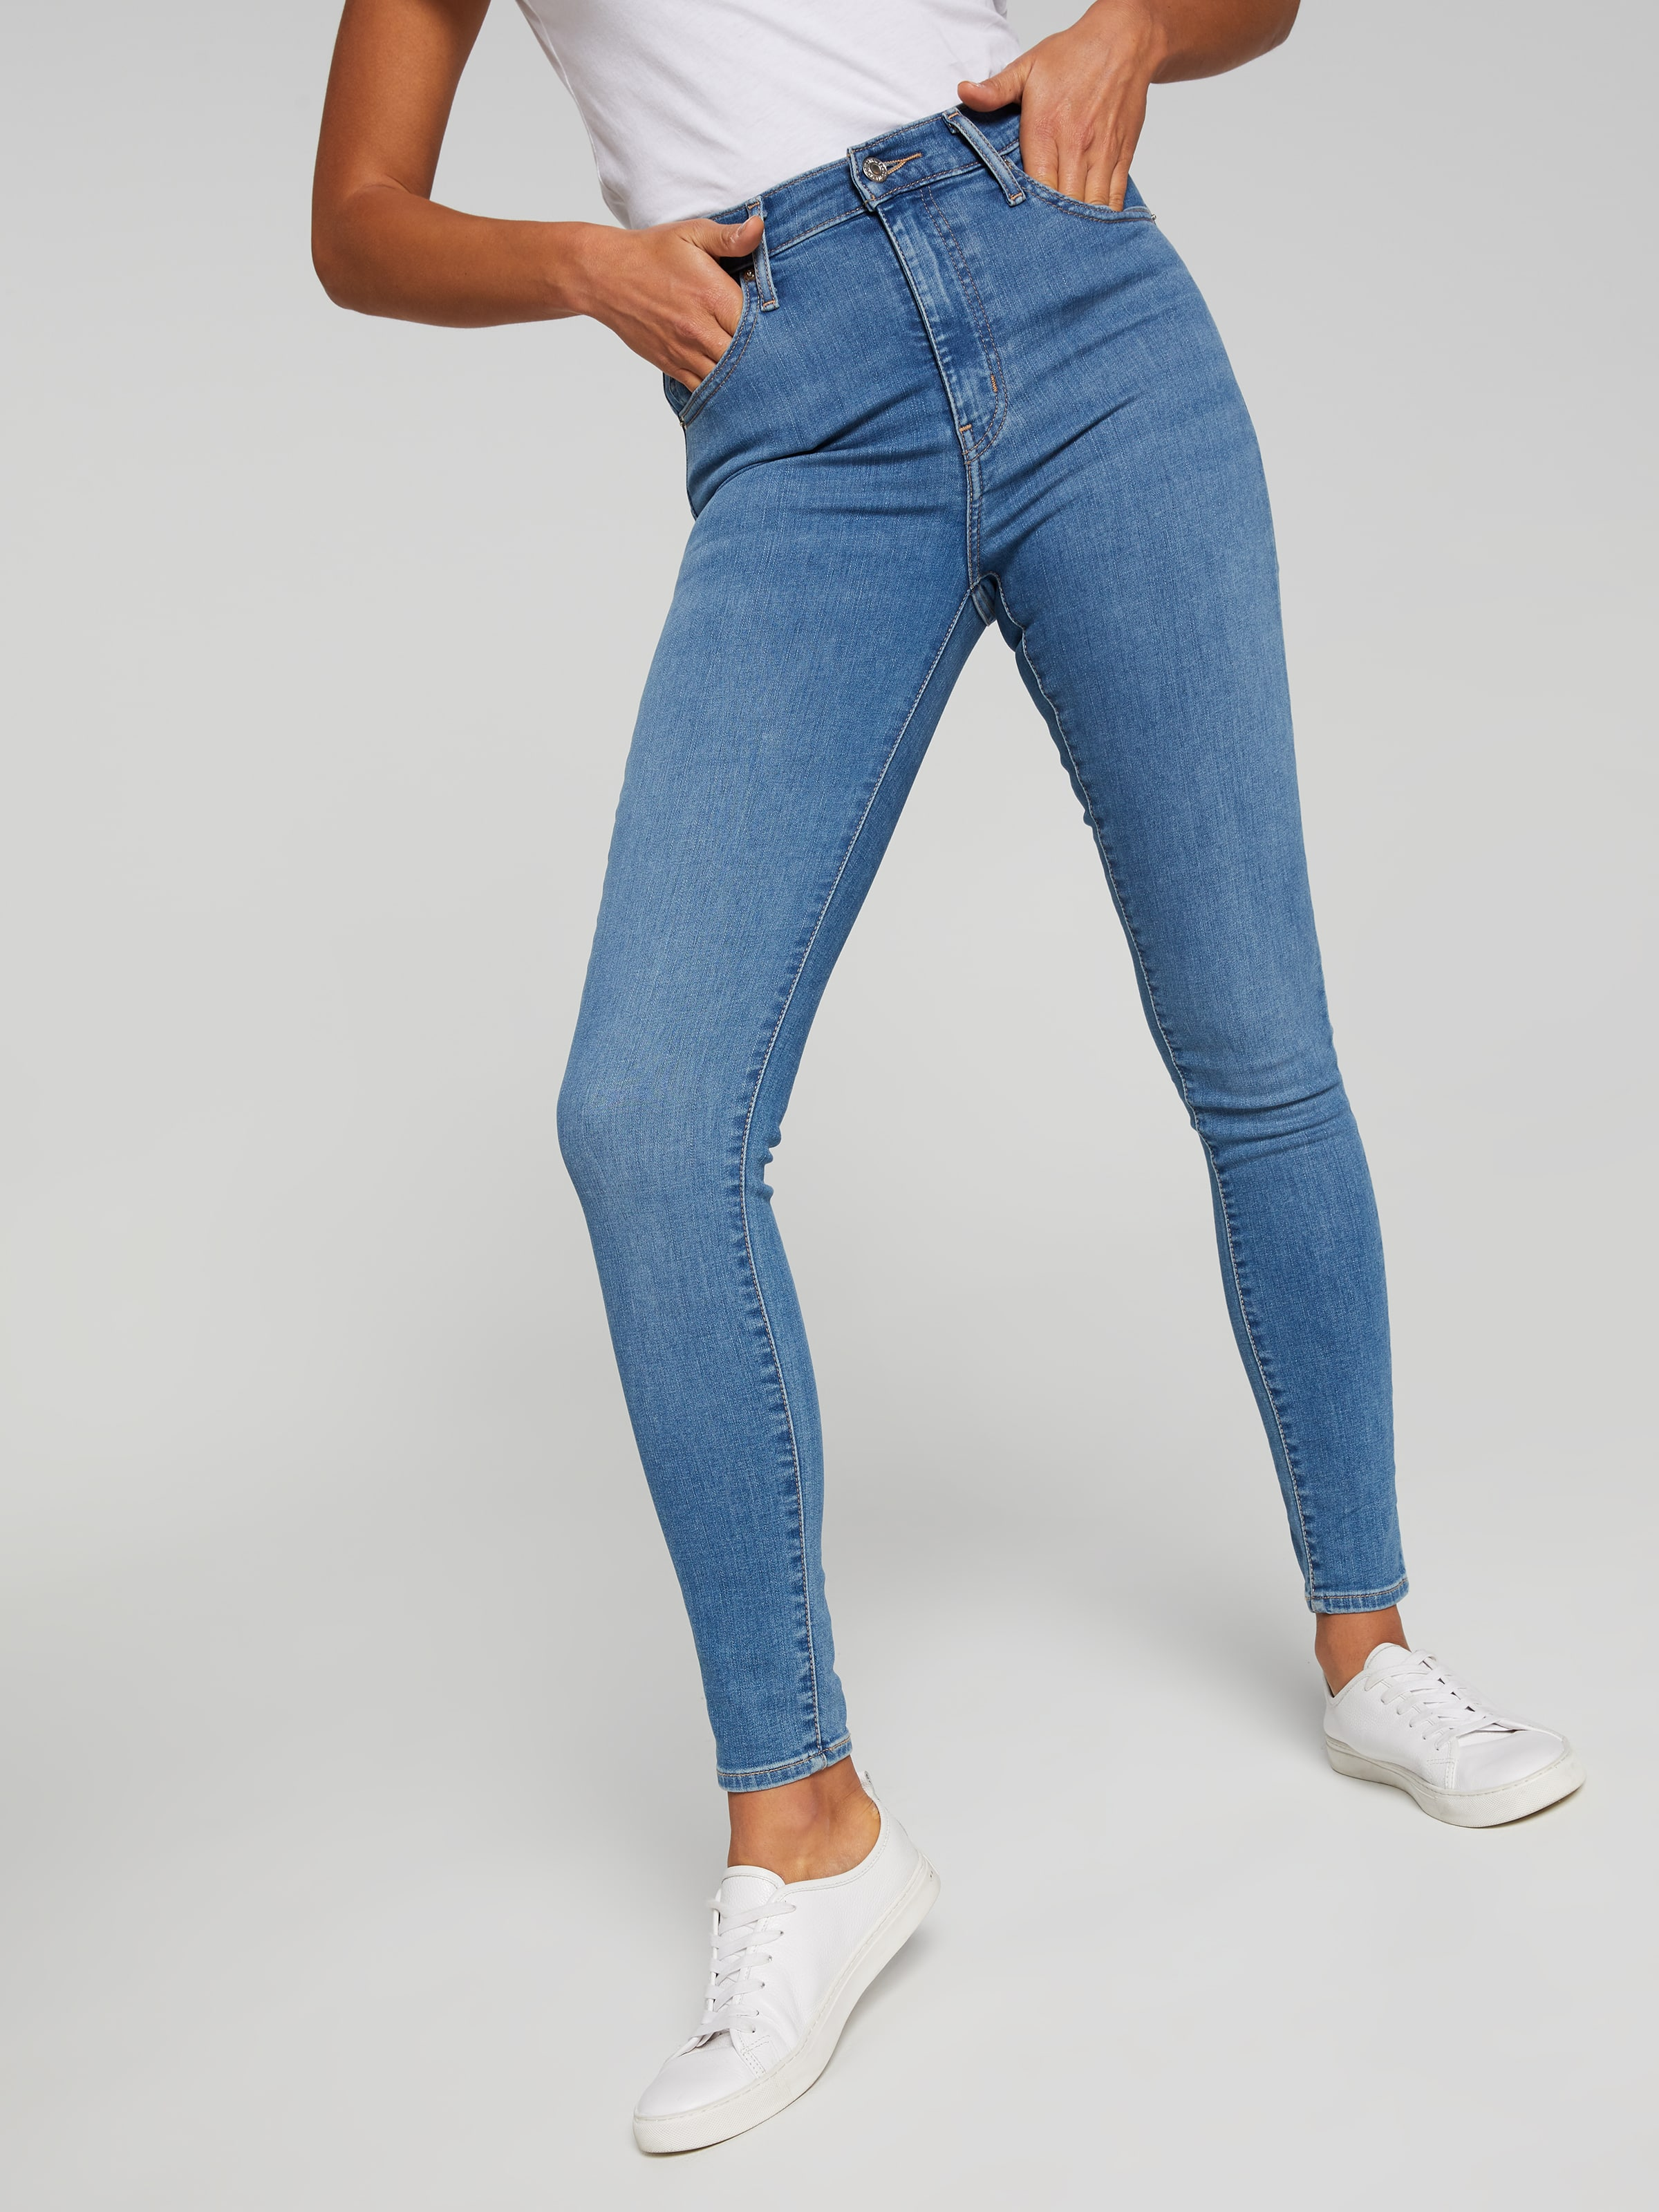 Buy Just Jeans Levi s Mile High Jean In New Moon Black   Australian ... f8f9675103